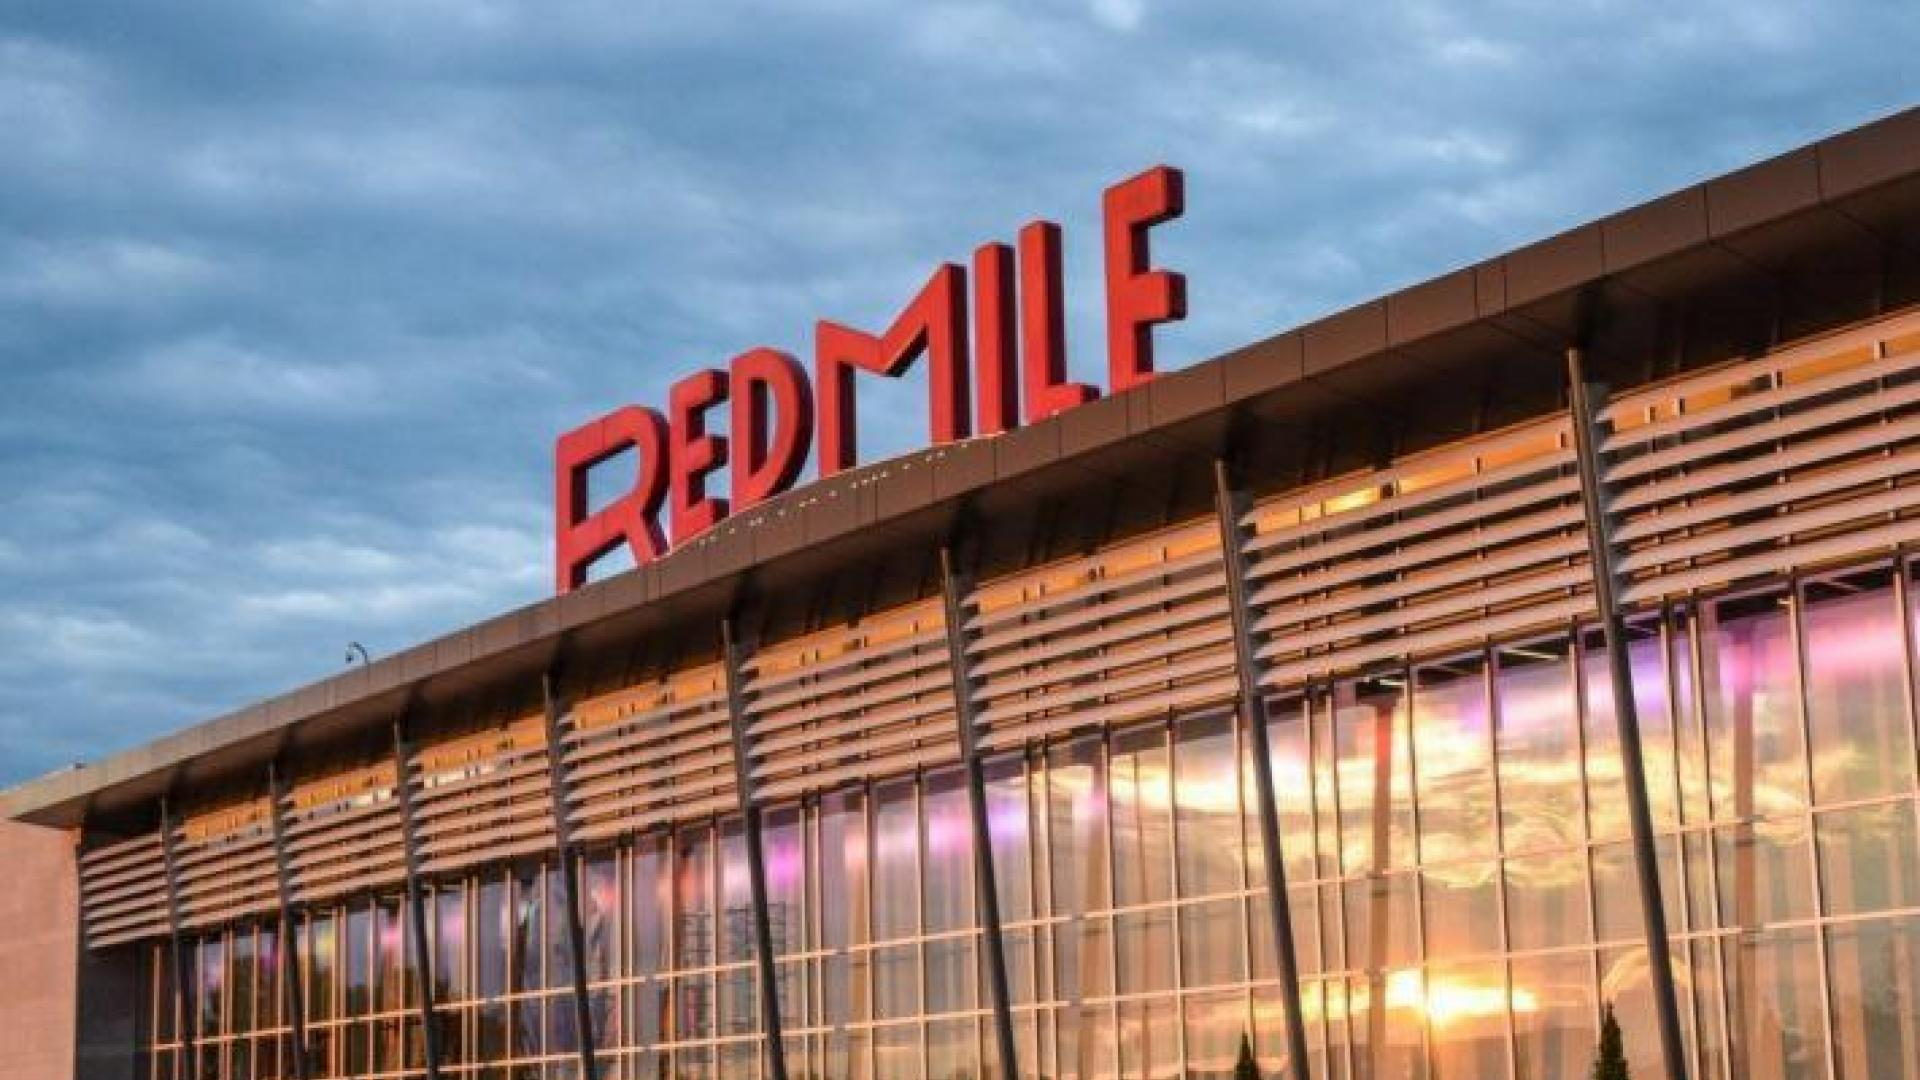 Red Mile exterior